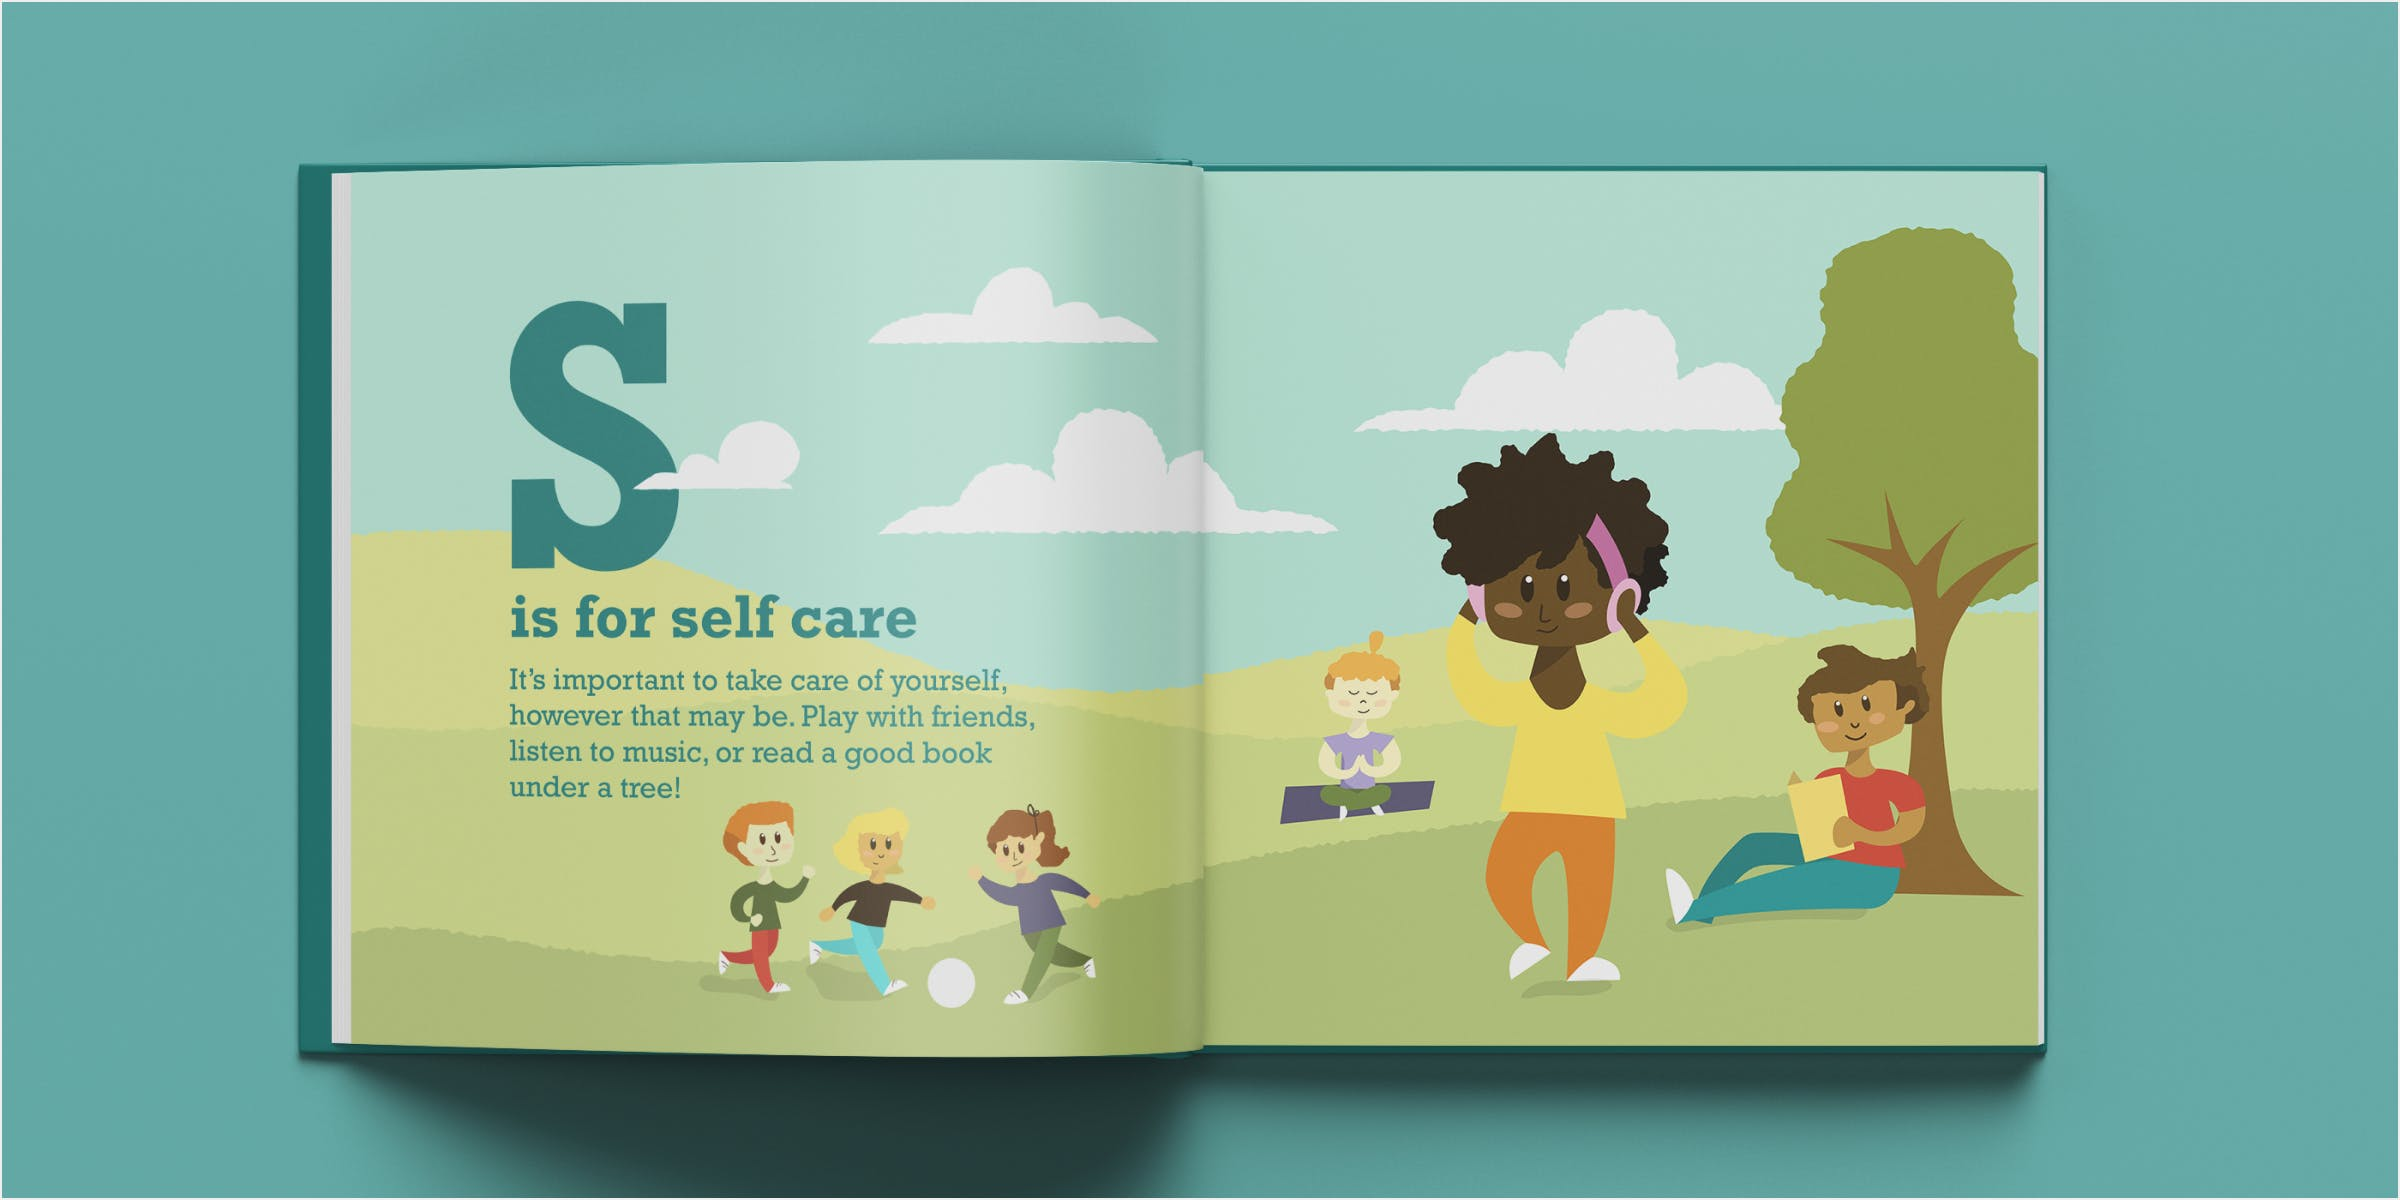 Mockup of self-care spread in a book. A group and several individual characters participating in self-care activities in an outdoor hill setting.